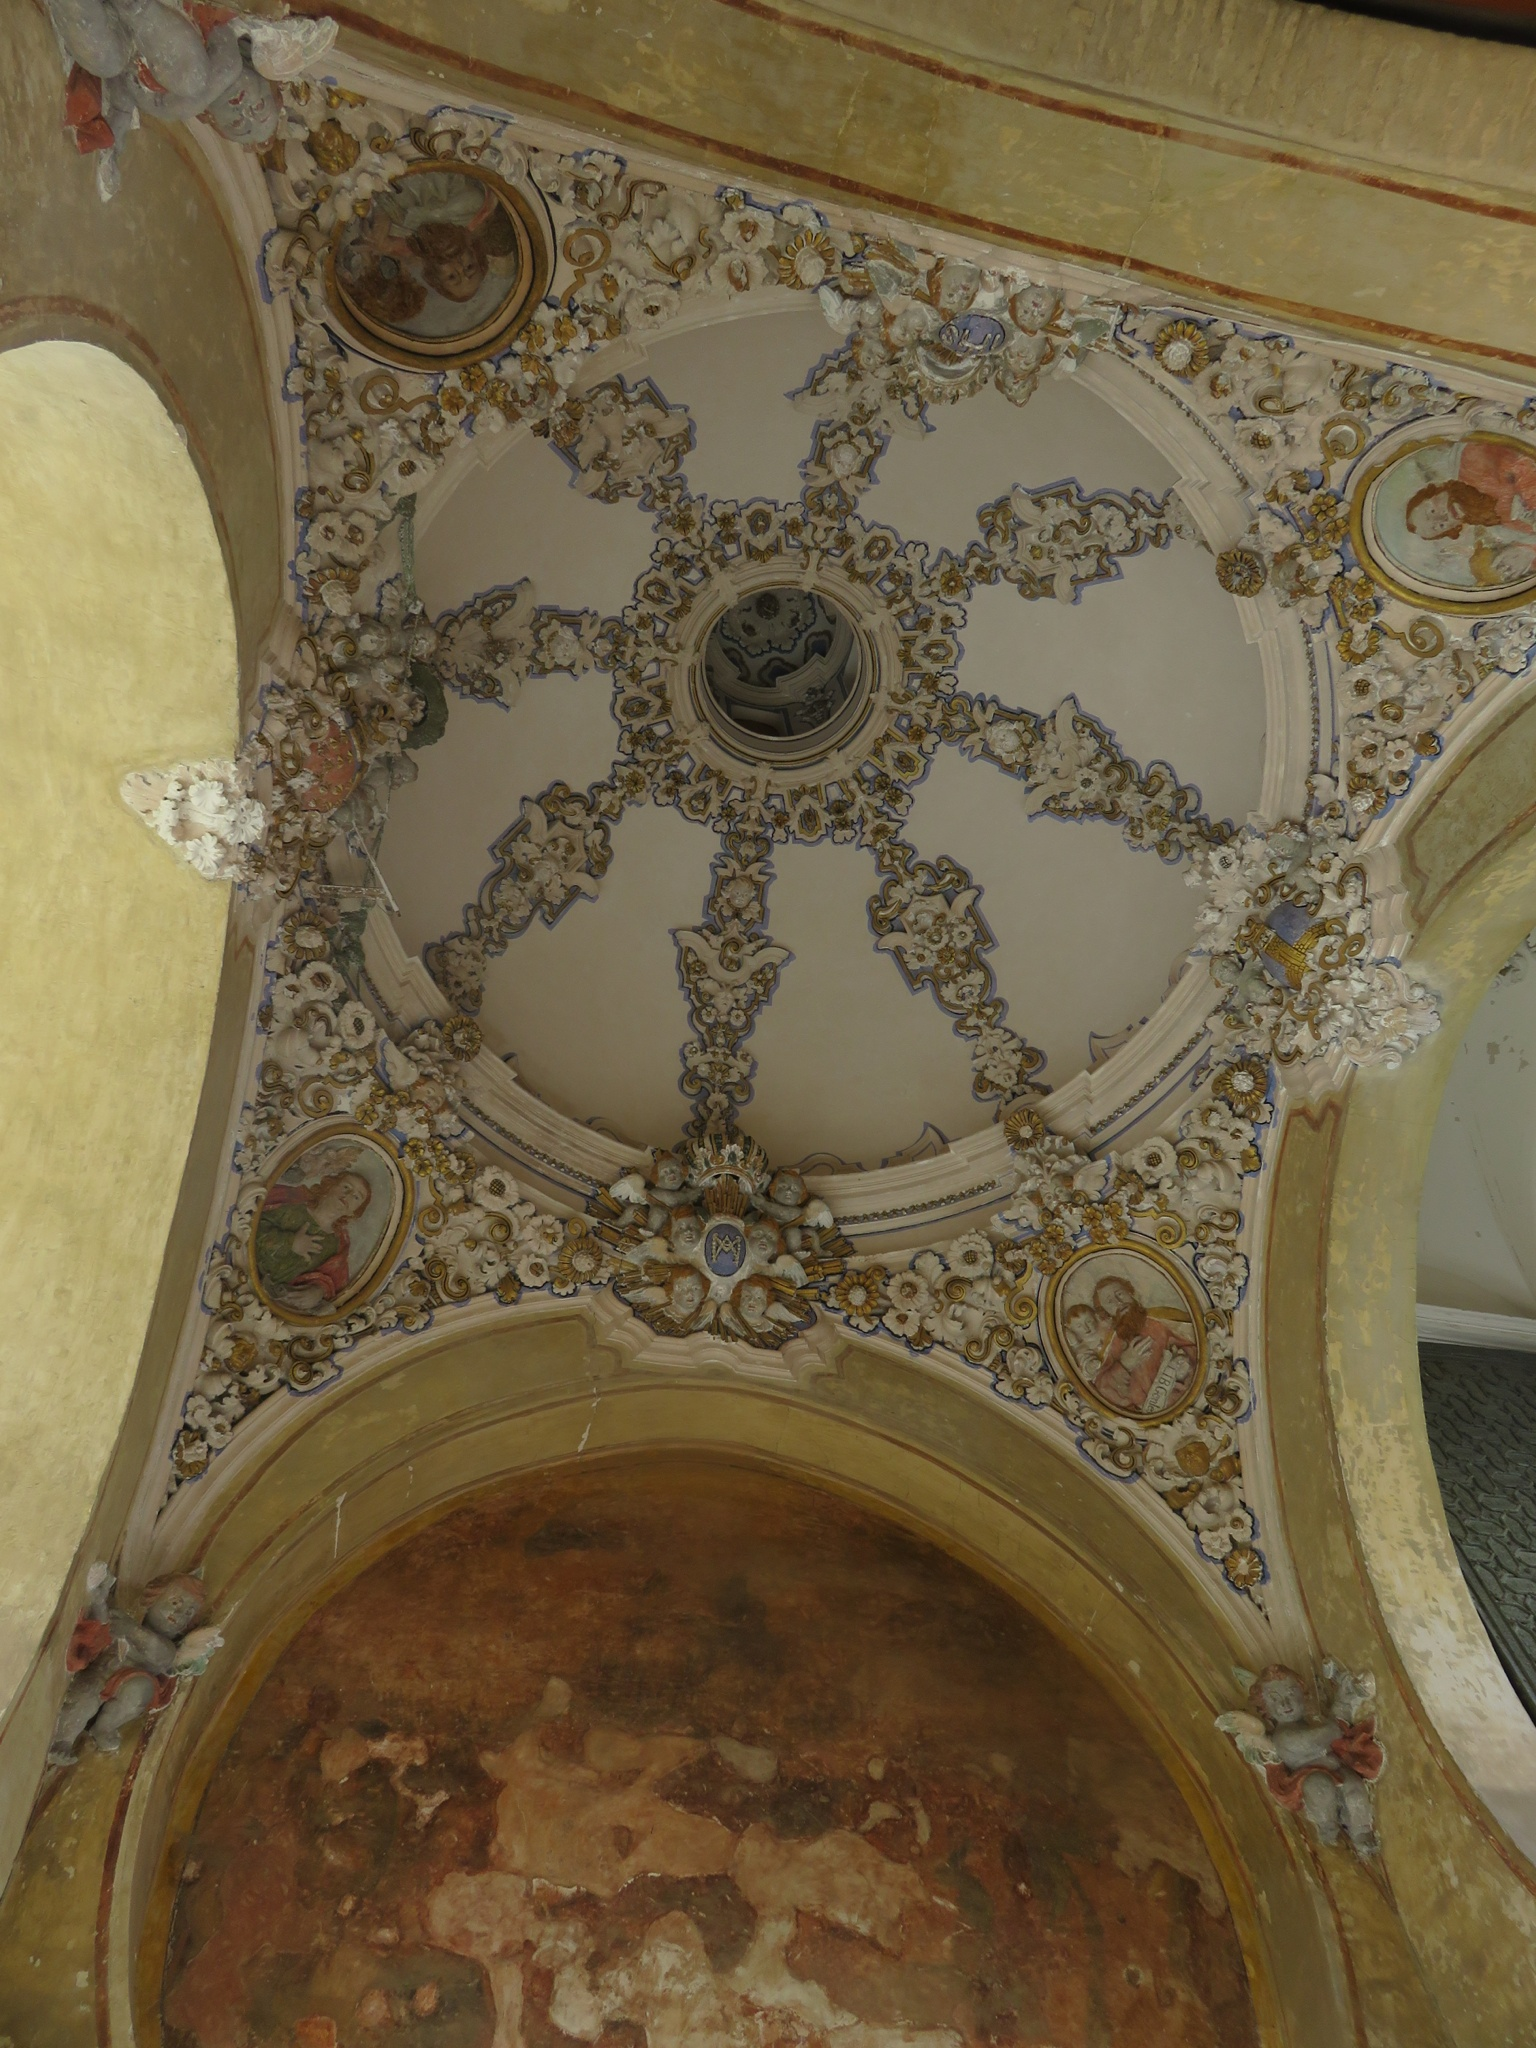 Ceiling of the gateway entrance